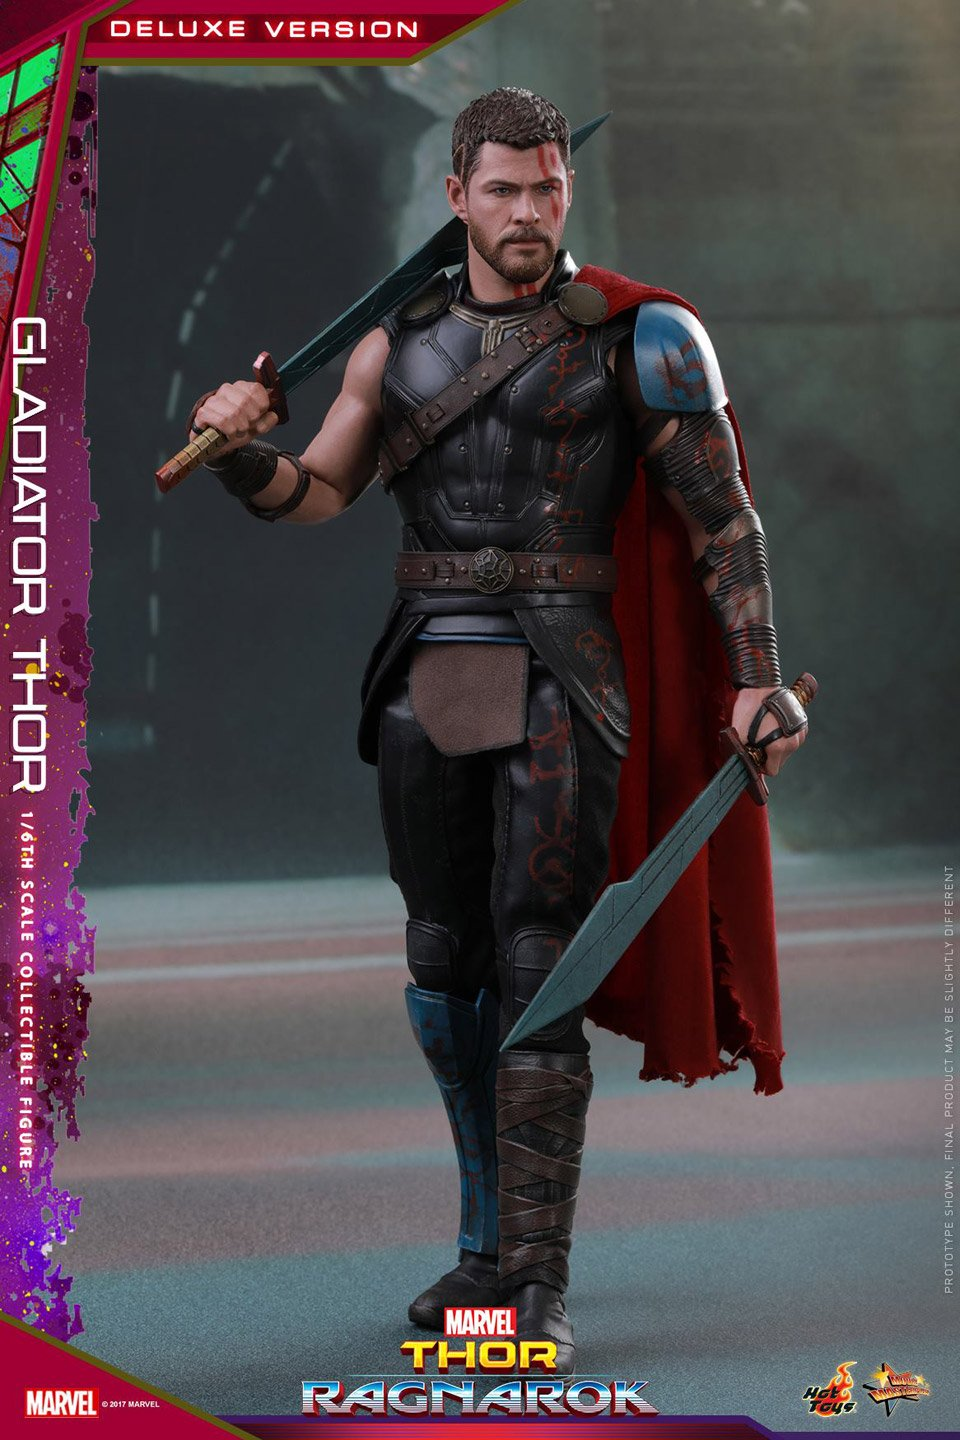 Hot Toys Action Figures: Hot Toys Gladiator Thor Action Figure: A Toy From Work